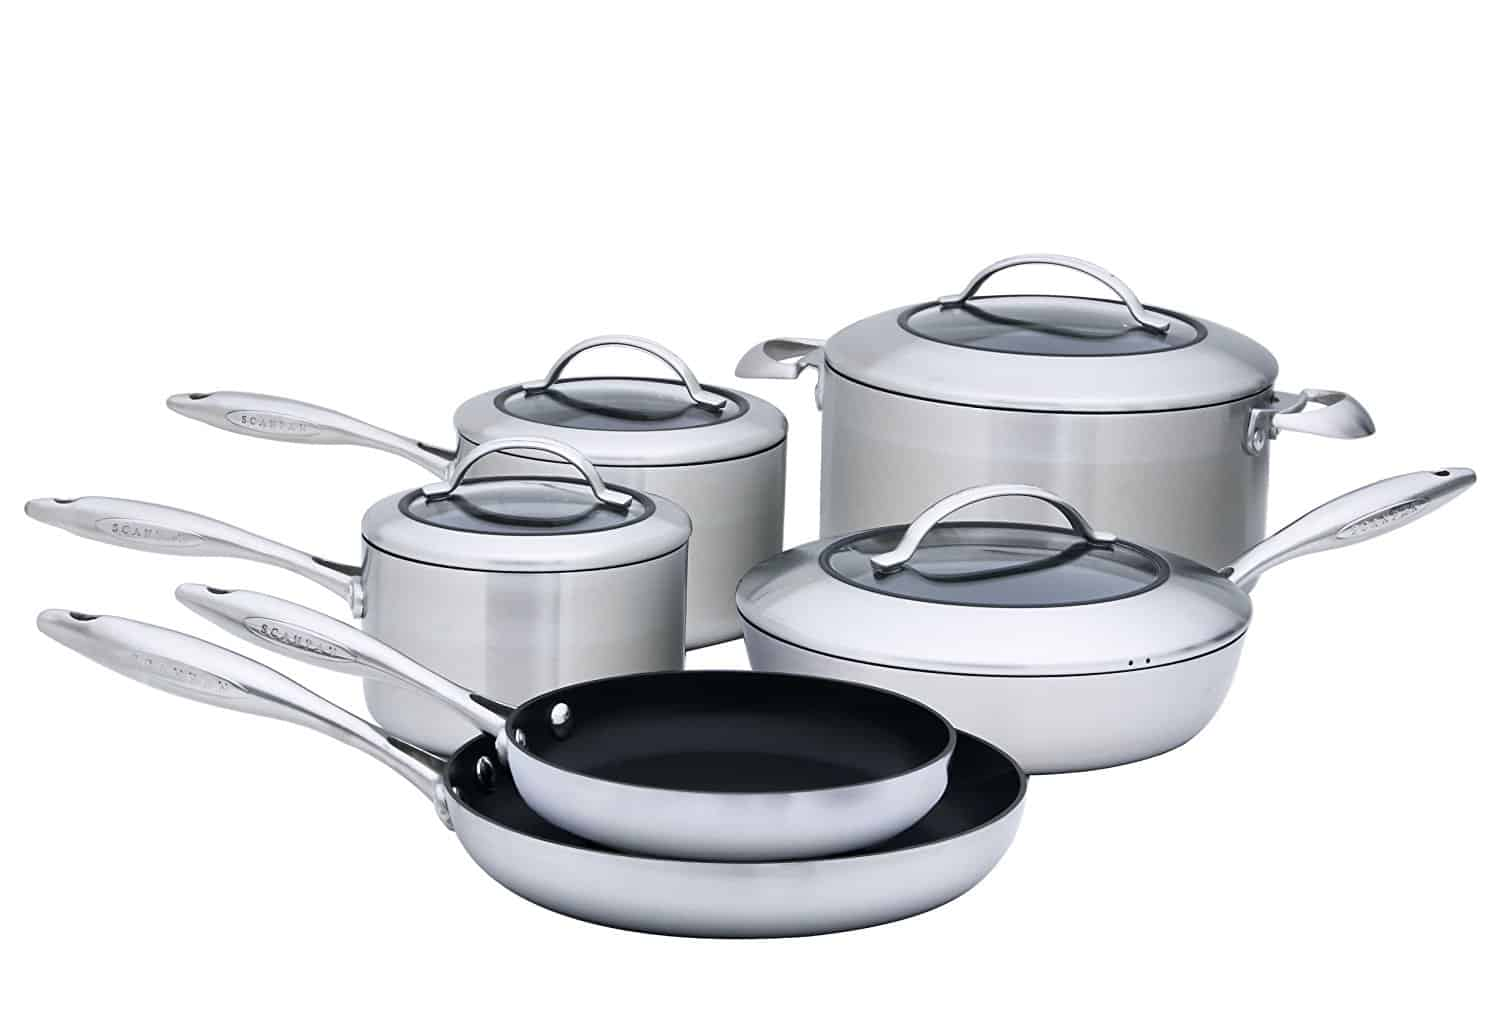 Scanpan CTX Nonstick 10-Piece Cookware Set